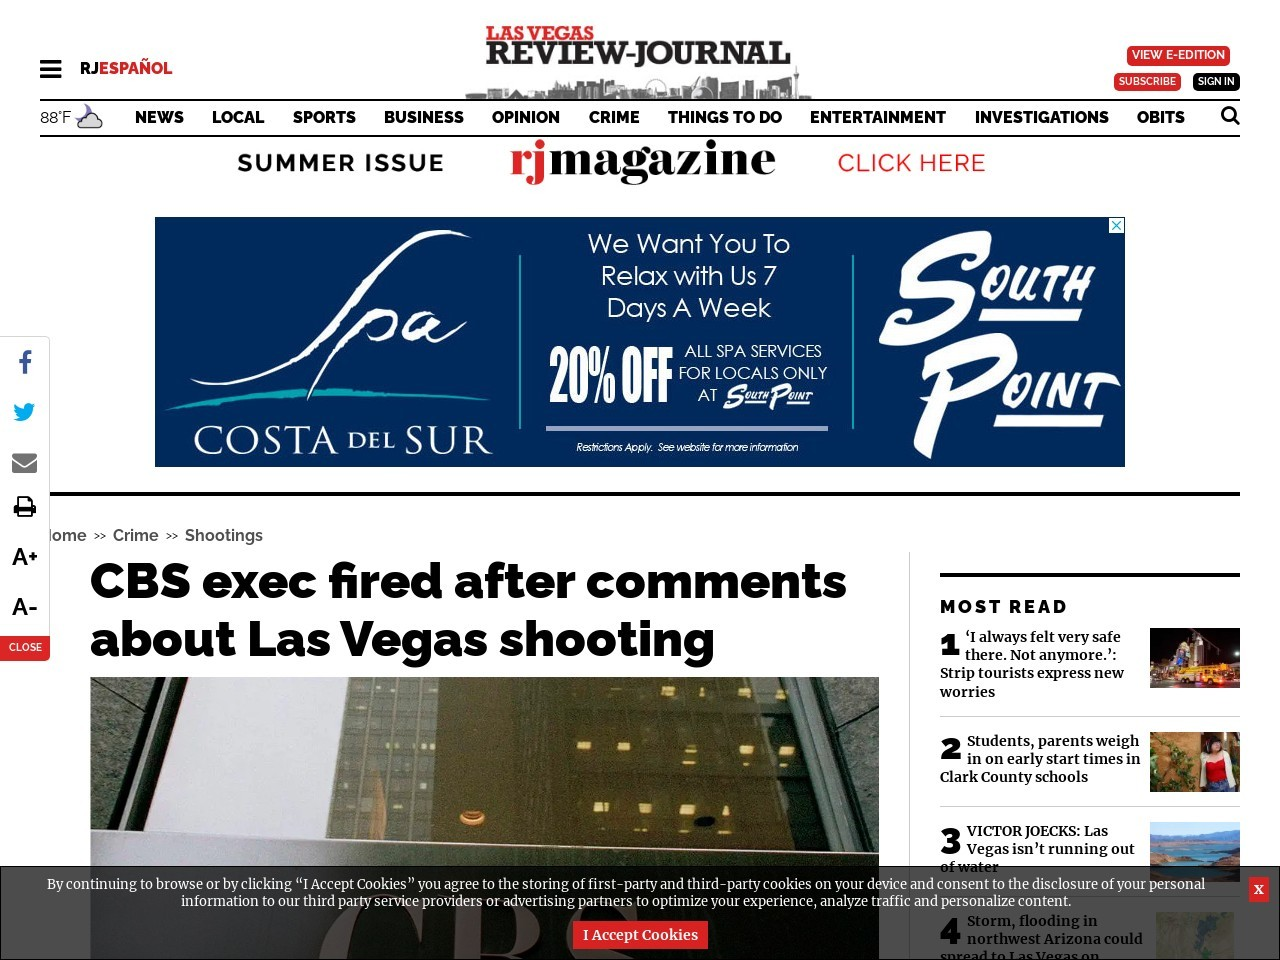 CBS exec fired after comments about Las Vegas shooting